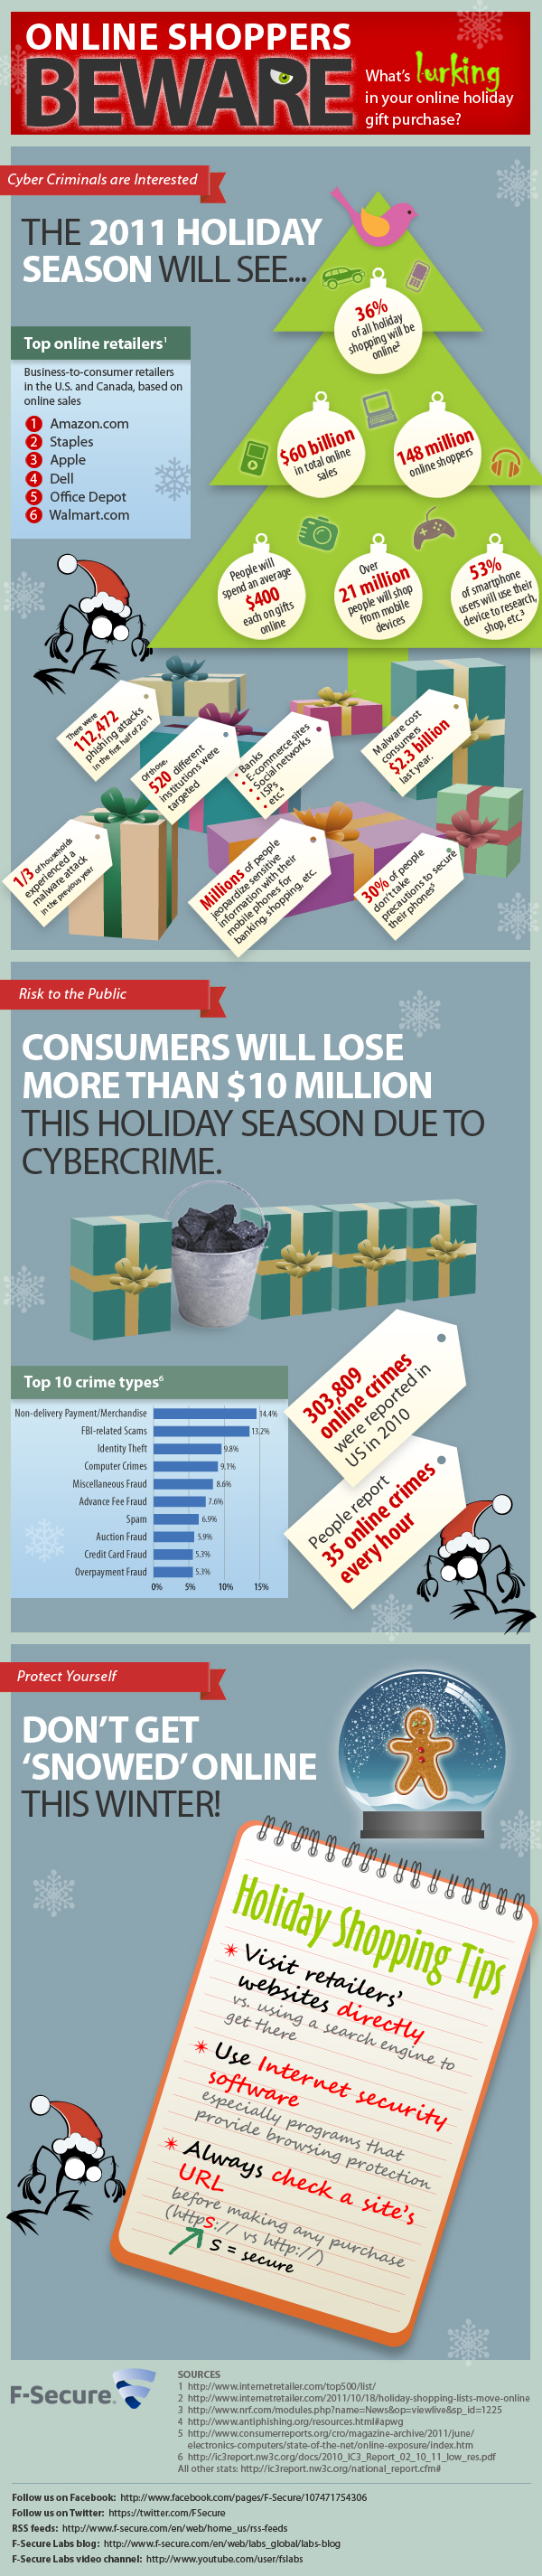 F-Secure Holiday Infographic